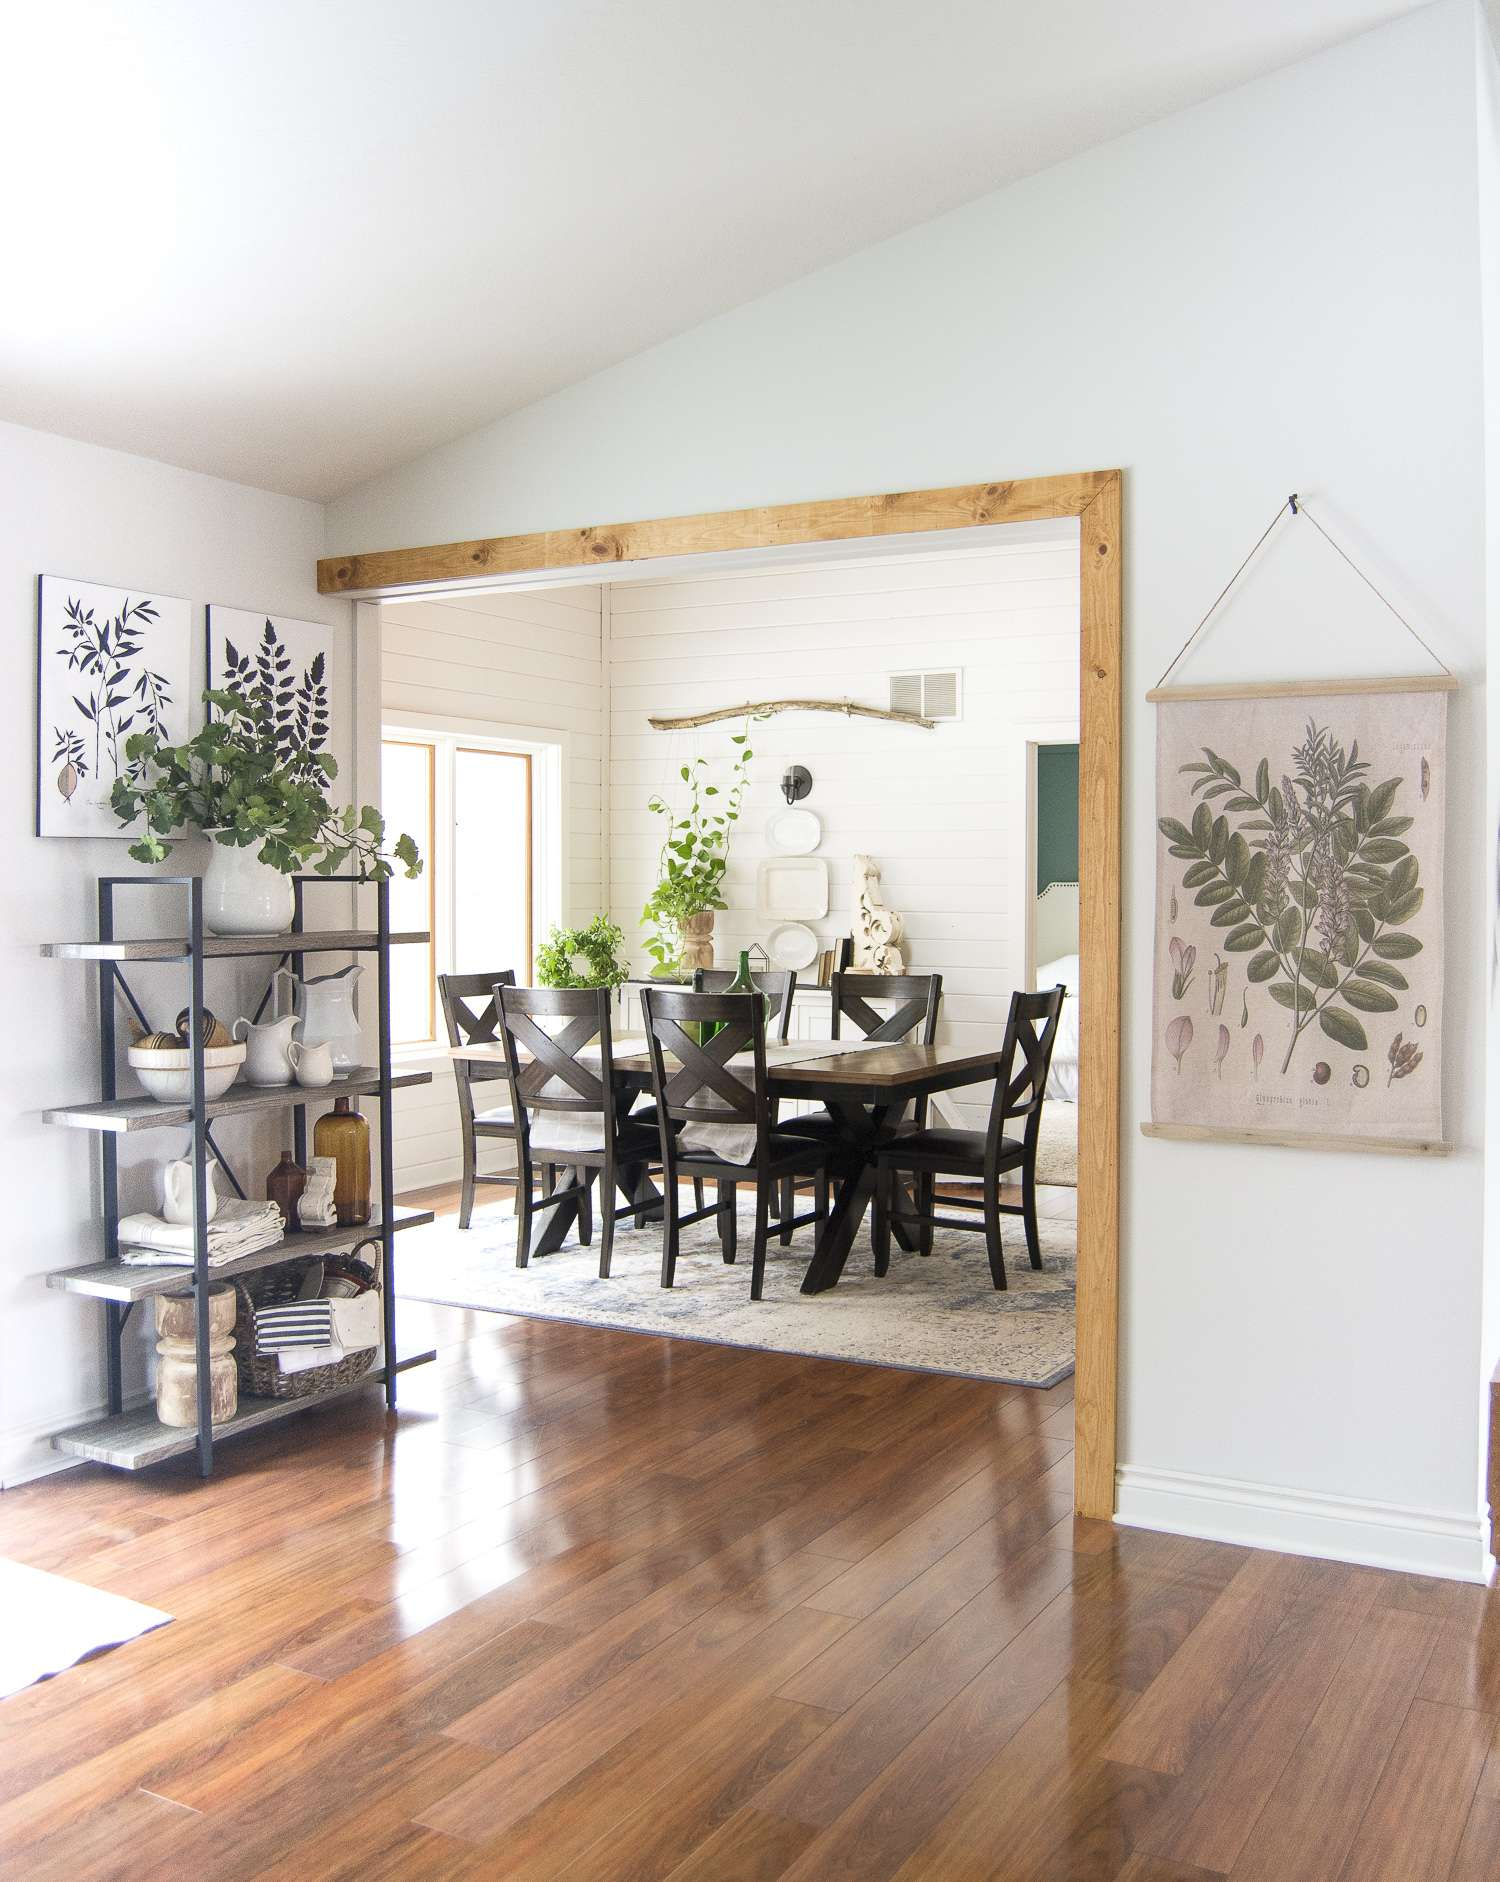 Are you looking for easy ways to transition your dining room from winter into spring? Here are my top three tips for transitional dining room decor ideas. #fromhousetohaven #diningroomdecor #springdecor #winterdecor